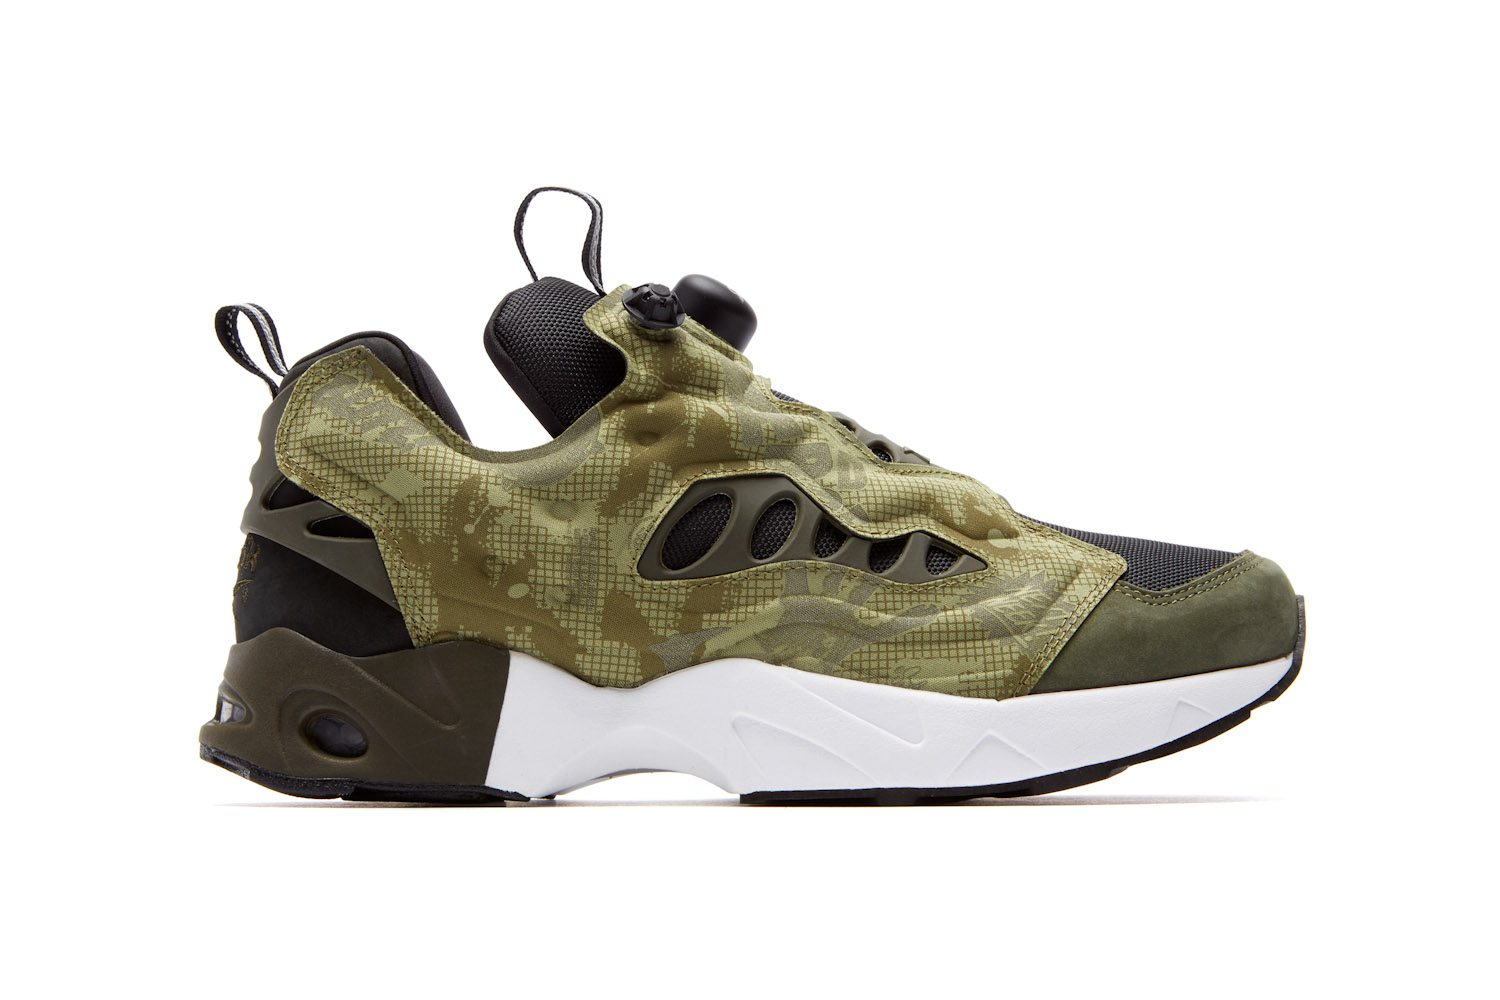 Swifty x Reebok Classic Instapump Fury Road Night Camo 1